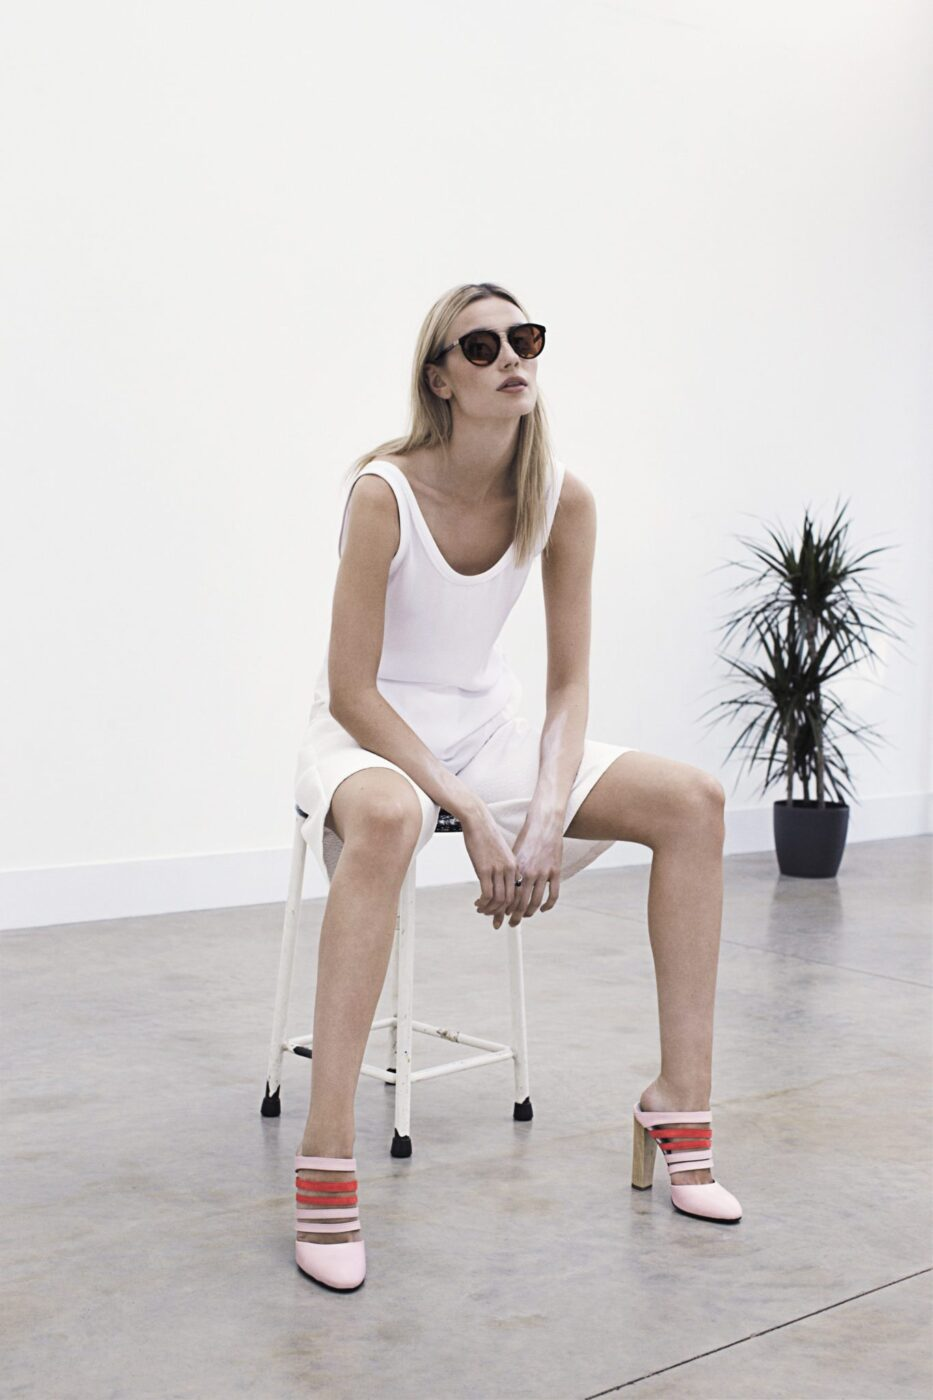 Directional Yet Demure Clothing For The Cool Modern Woman: Dear Frances Spring 2015 Collection